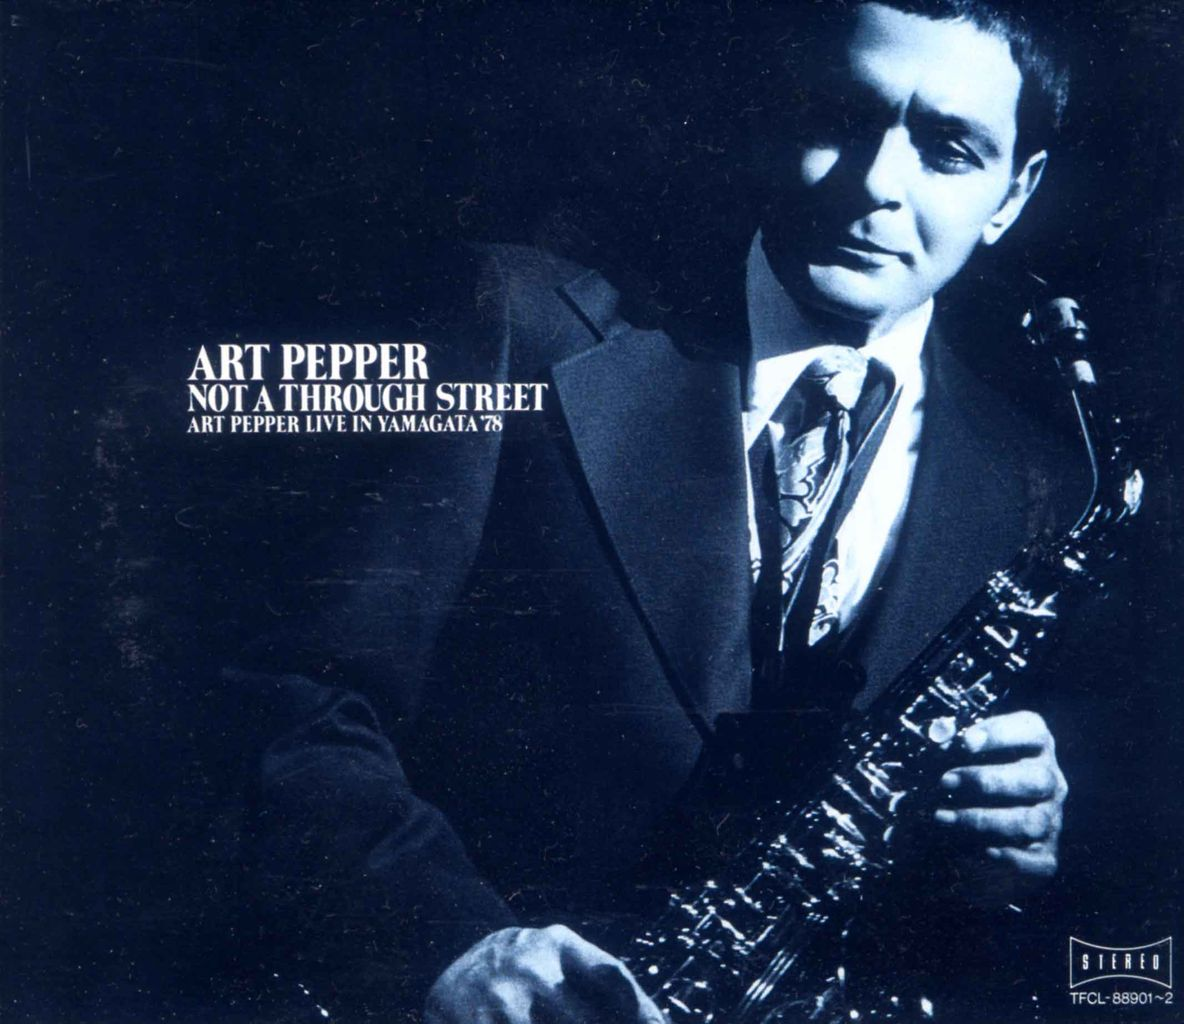 NOT A THROUGH STREET〜ART PEPPER LIVE IN YAMAGATA '78-1